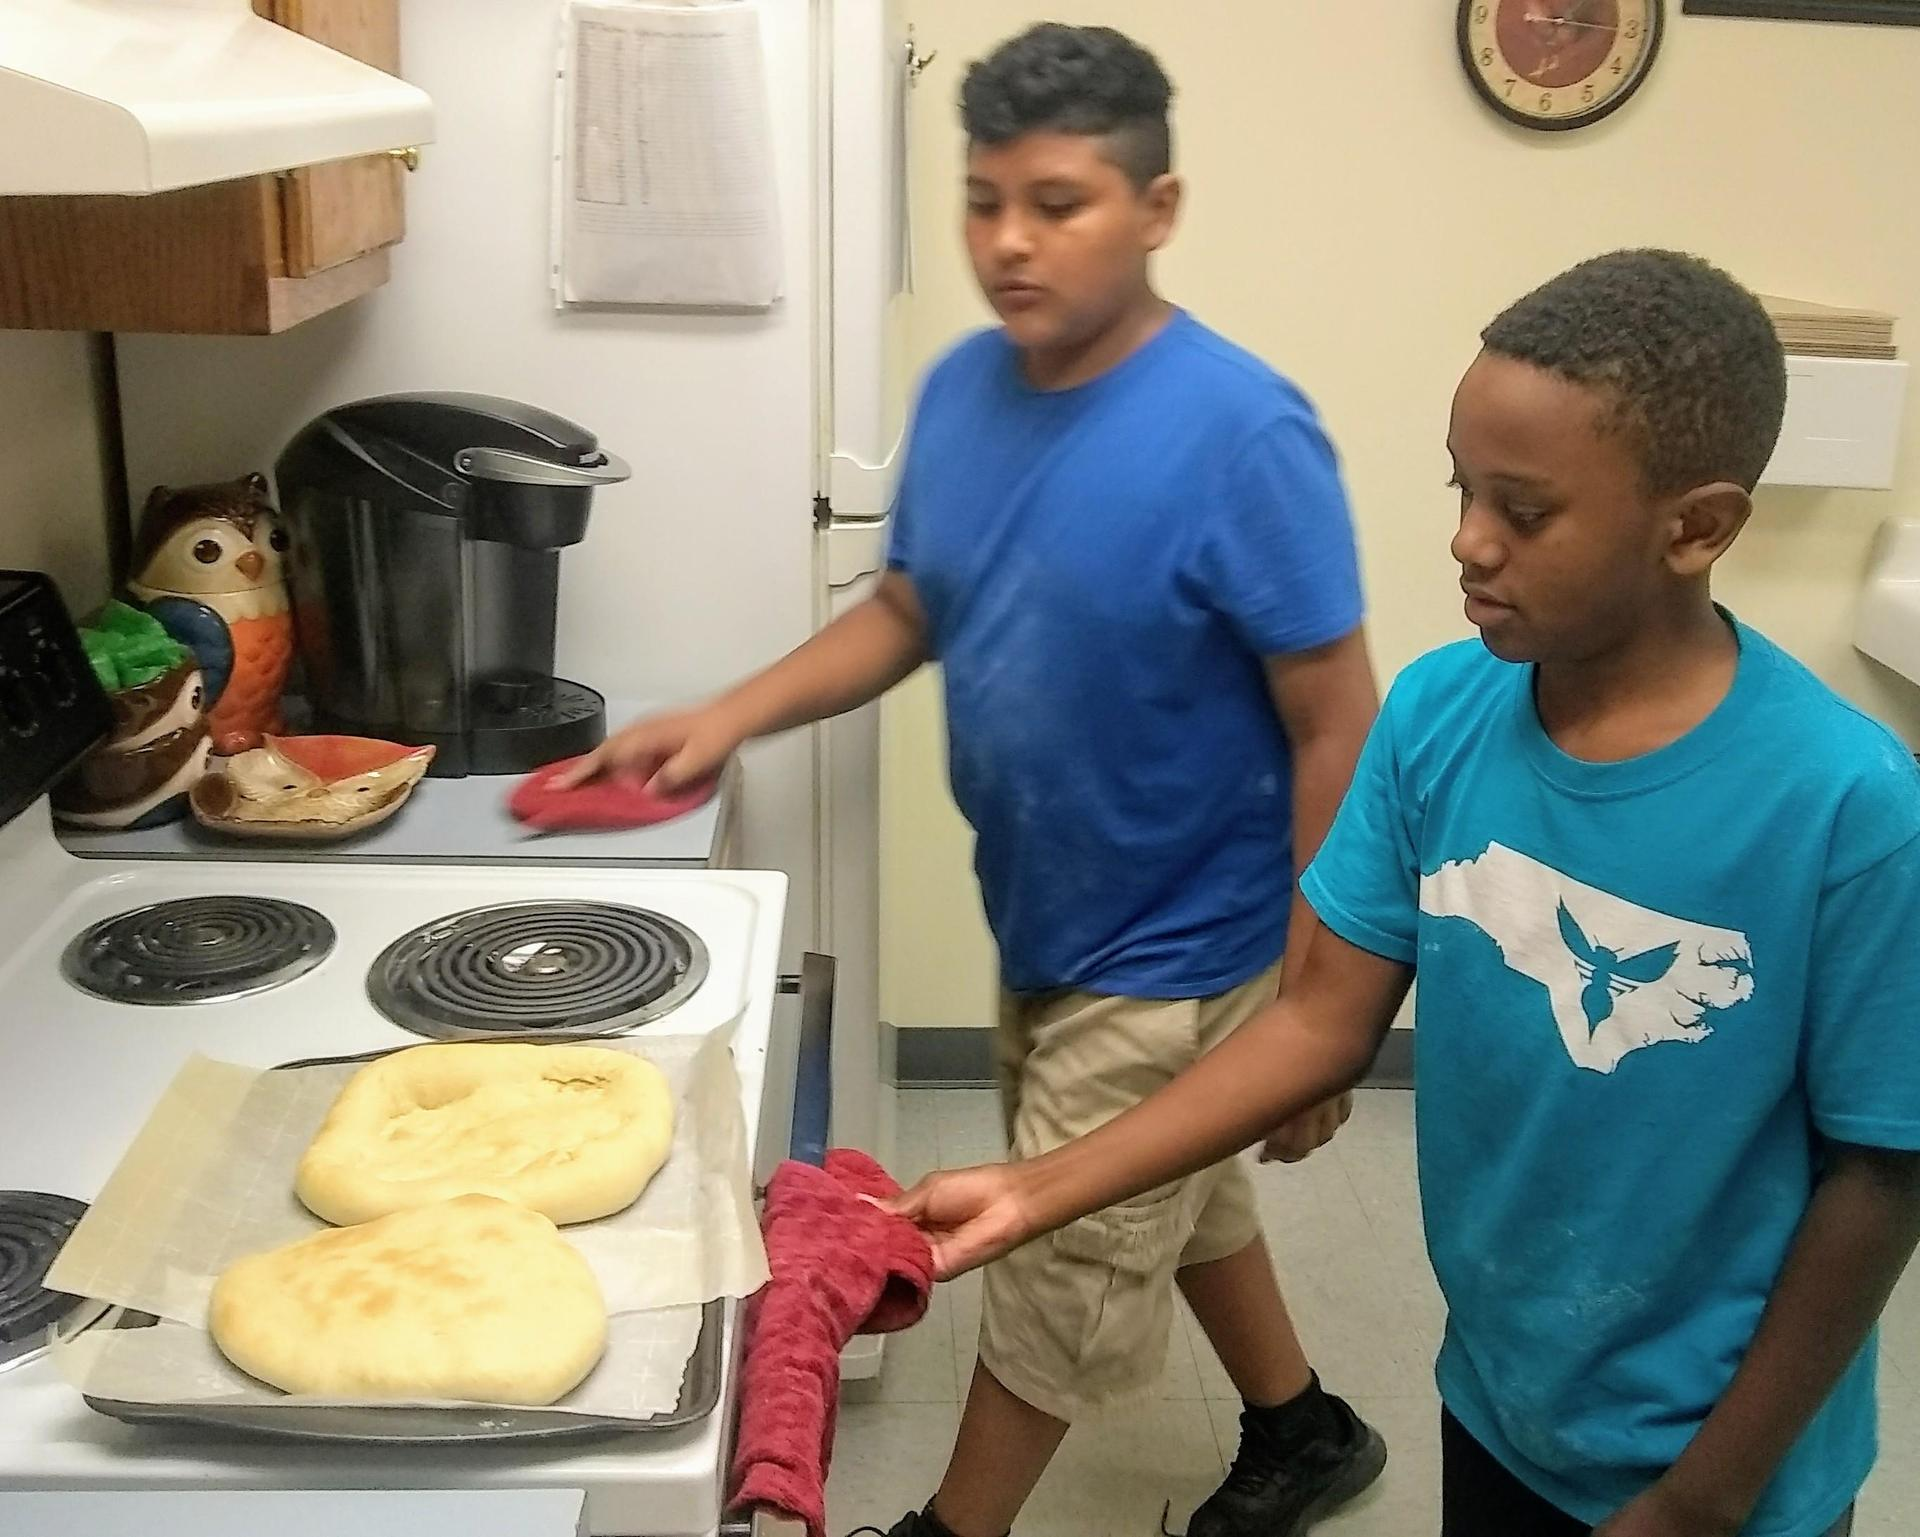 children taking pizza out of the oven